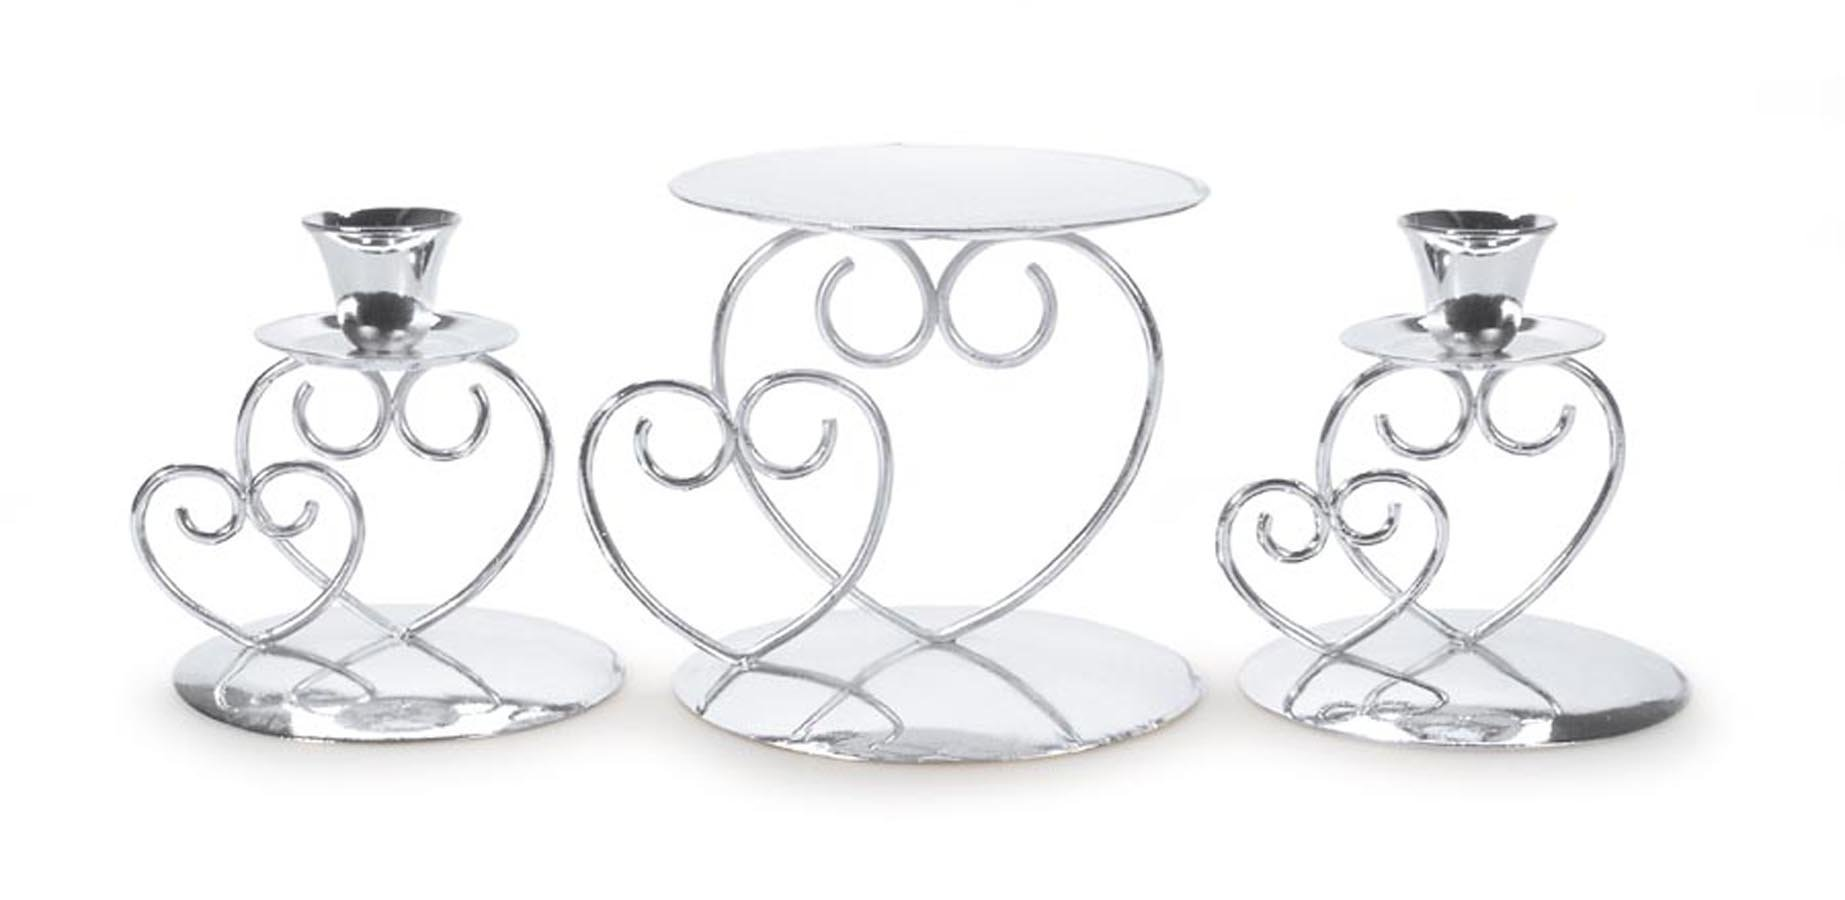 Darice Victoria Lynn Unity Candle Holder 3-Piece Set - Includes 2 Taper Candle Holders, 1 Pillar Candle Holder - Elegant Open Combined Hearts Design - Perfect for Wedding Ceremony, Silver